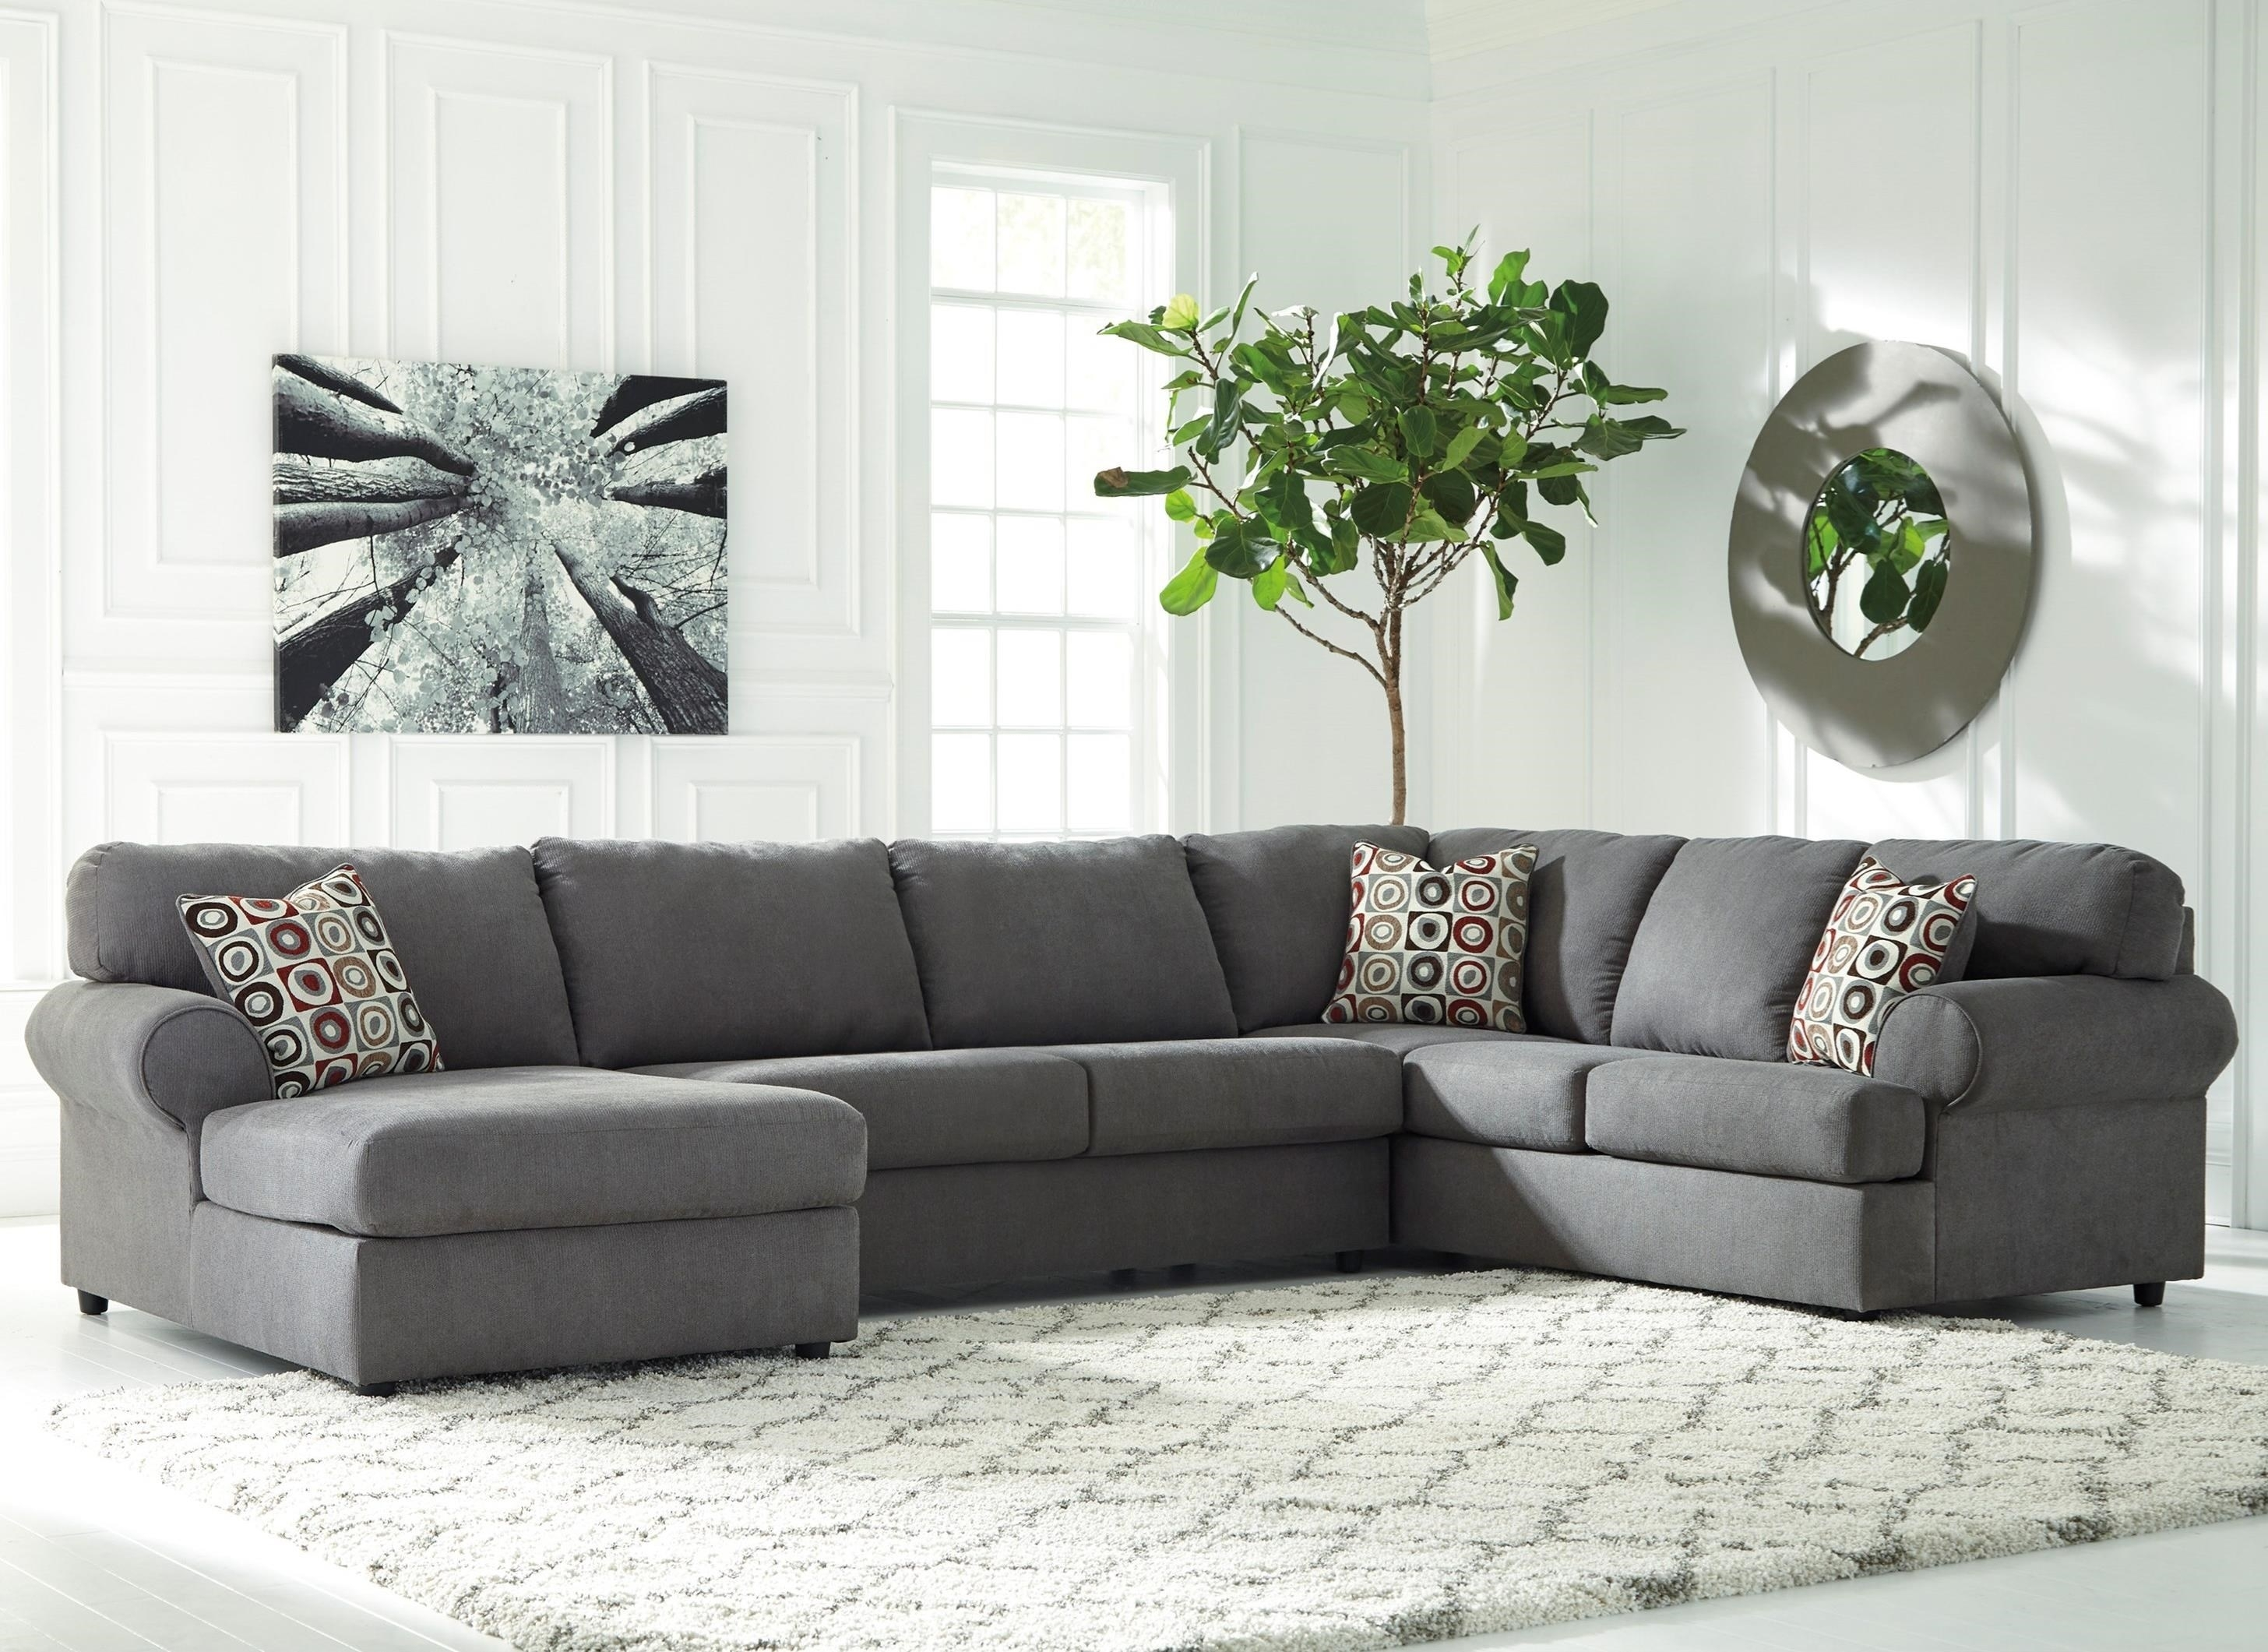 3 Piece Sectional – Locsbyhelenelorasa Regarding Harper Foam 3 Piece Sectionals With Raf Chaise (Image 2 of 25)